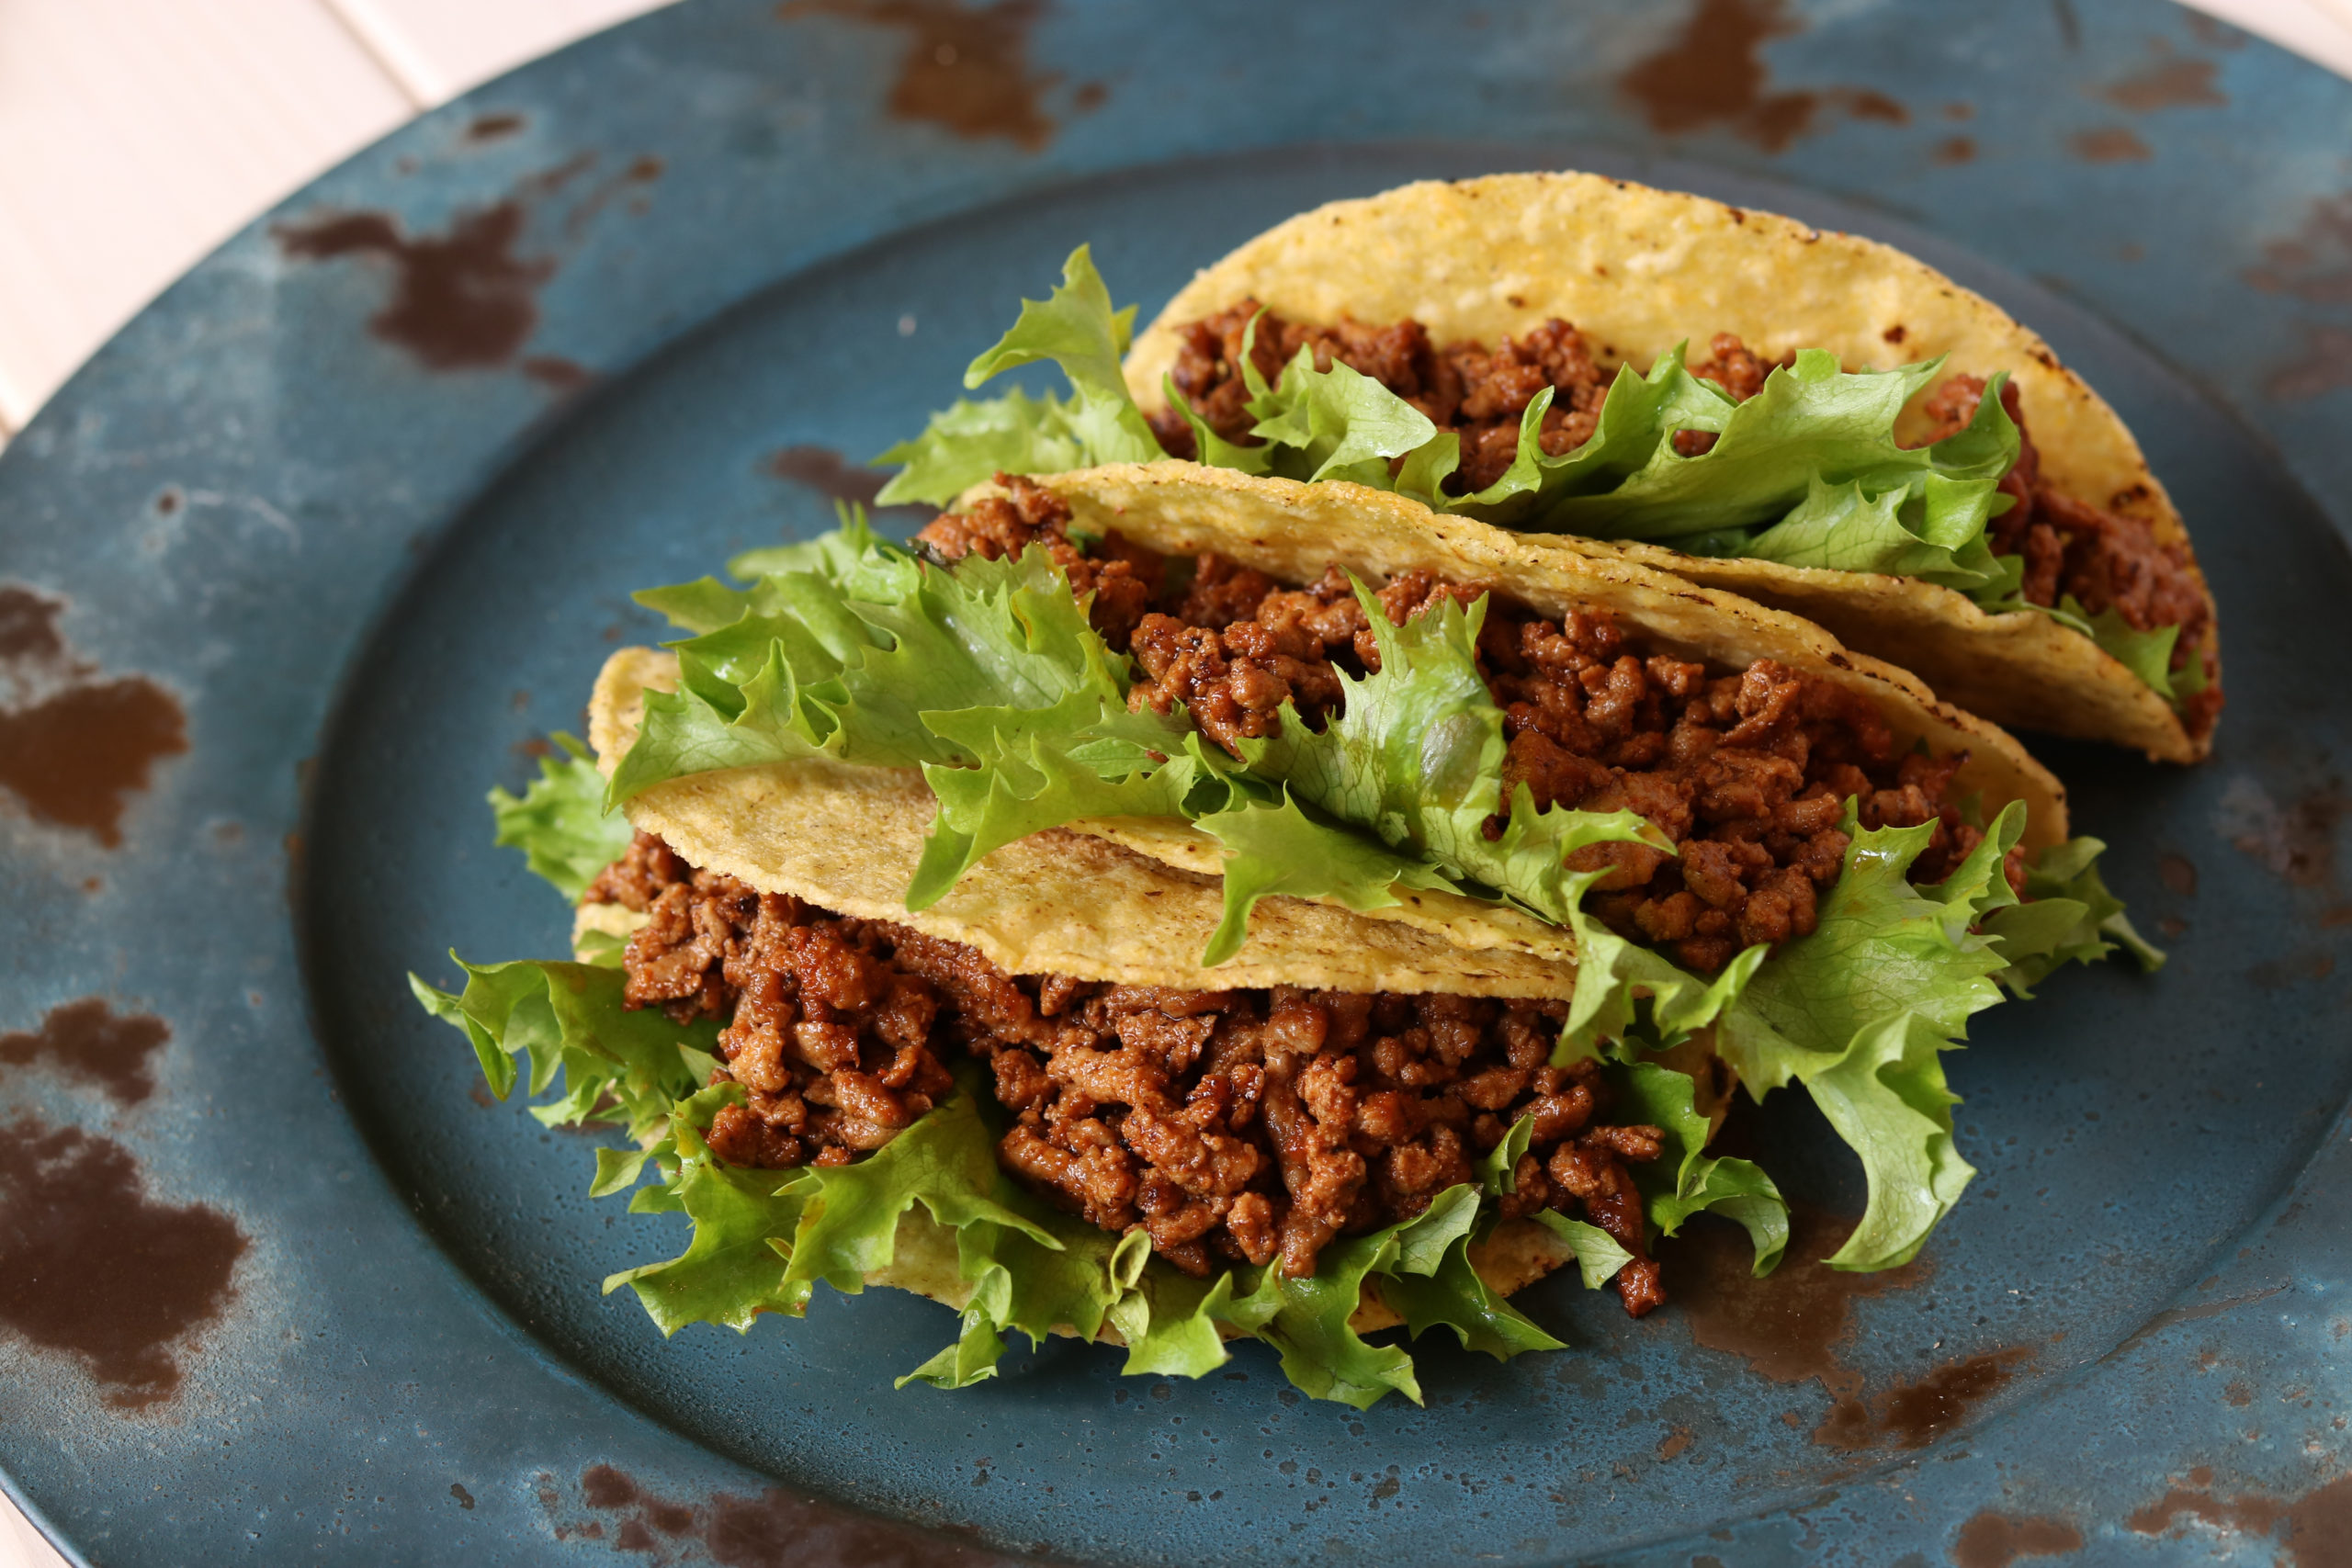 Beef Grief: Taco Bell Recall Leaves Customers Pining for Meat